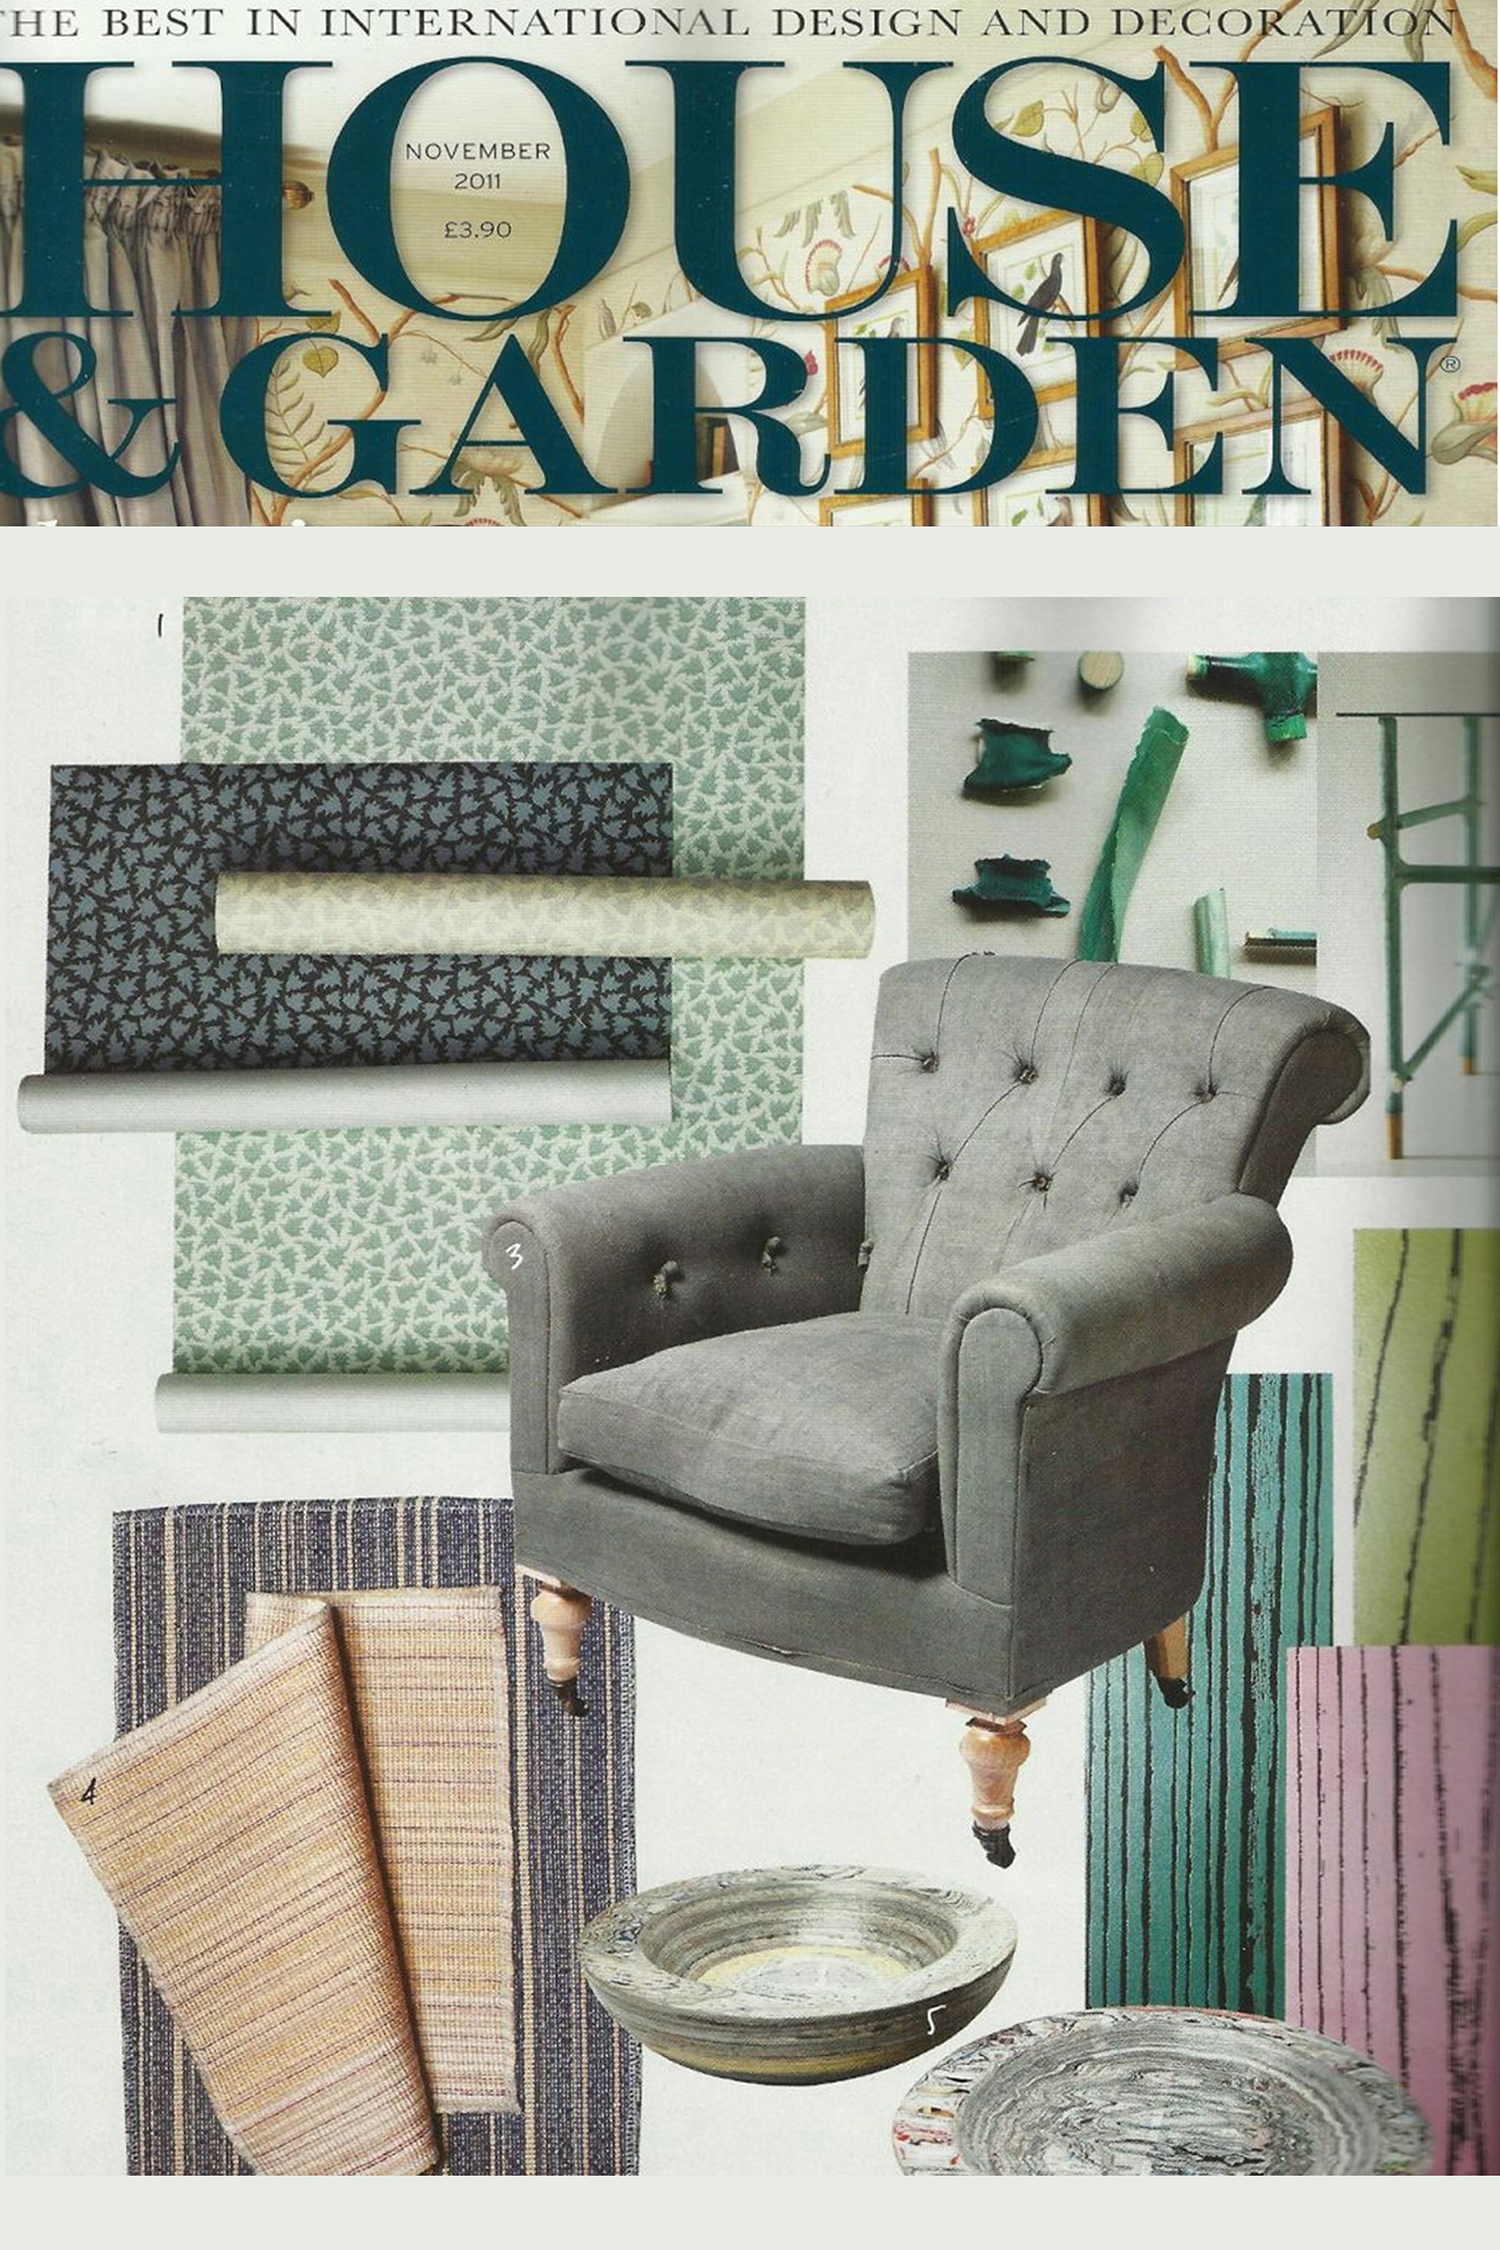 houseandgarden-web ready.jpg